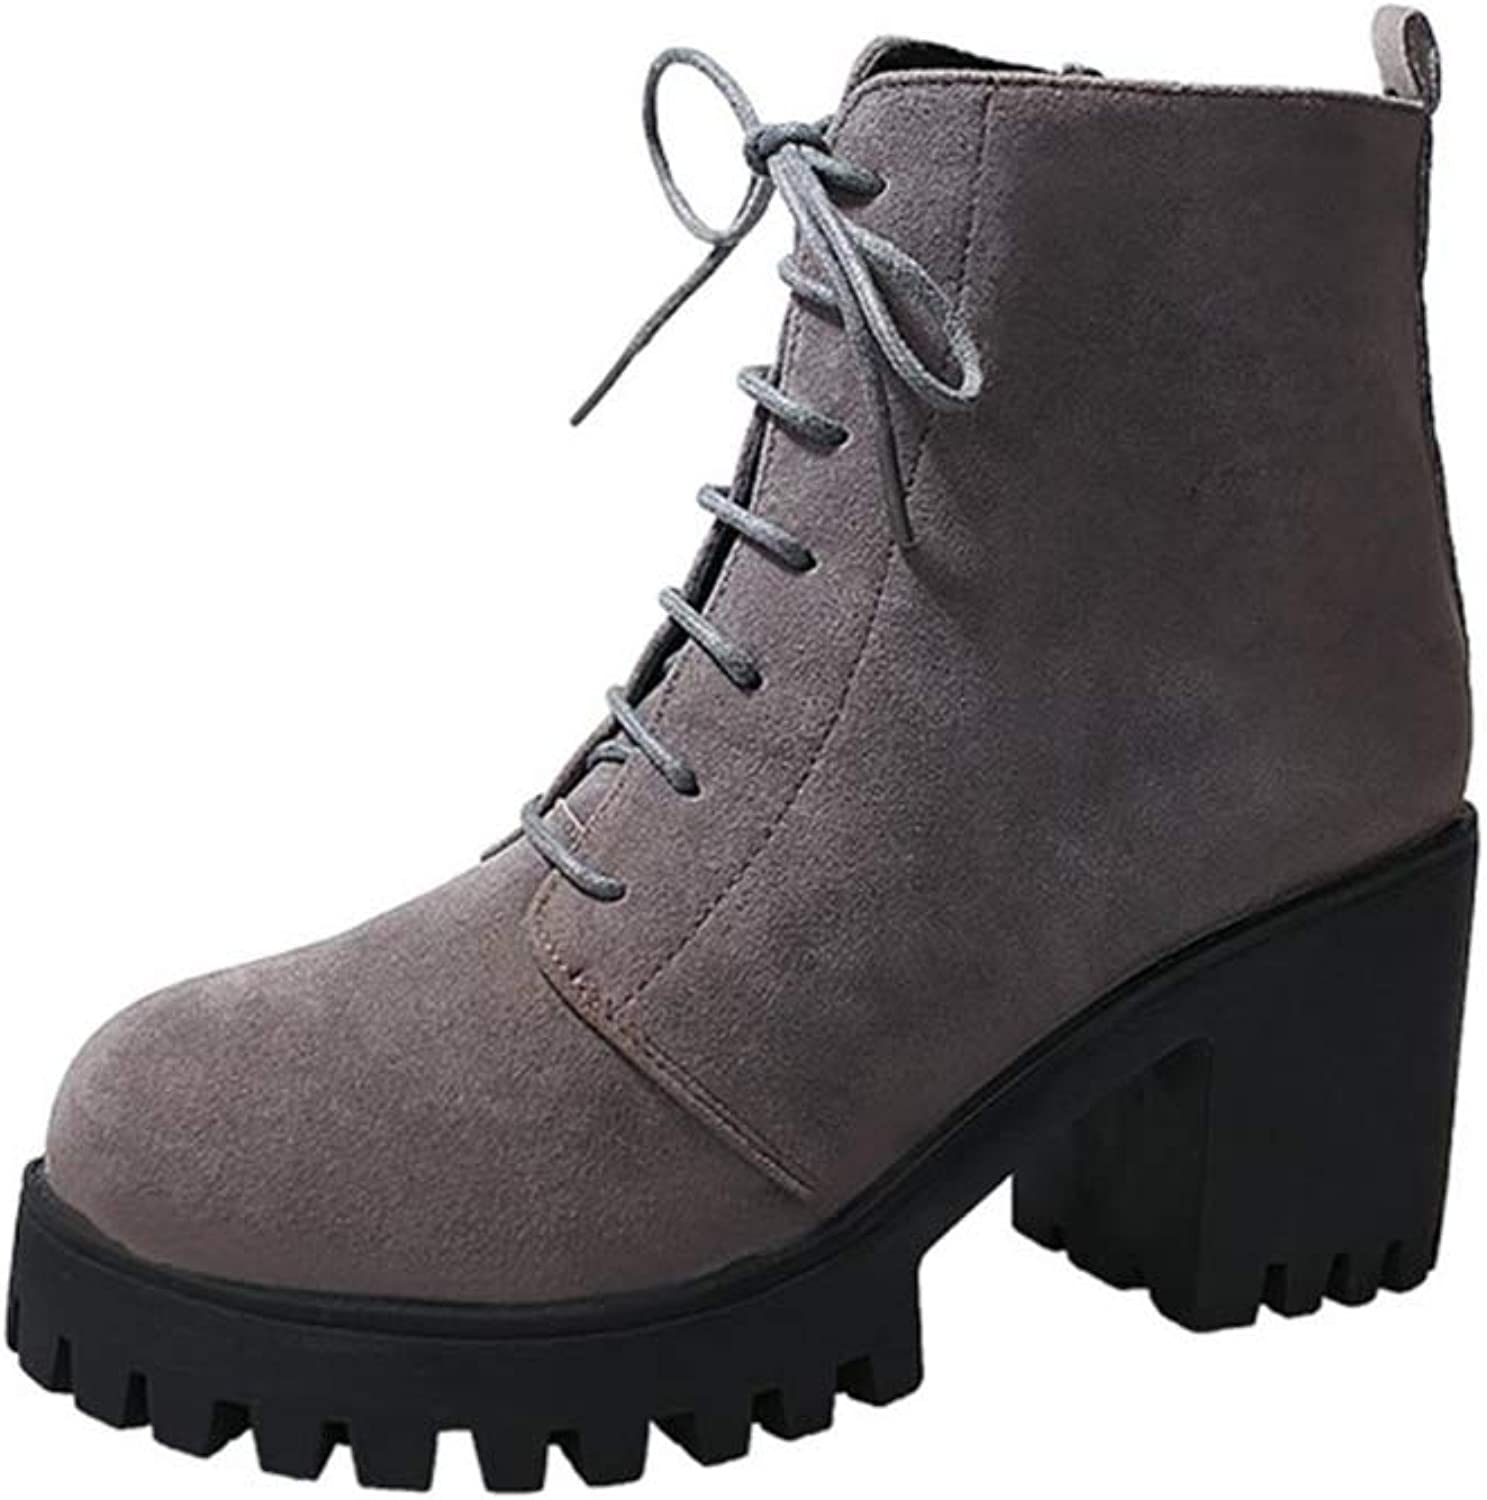 FORTUN Vintage Martin Boots Women's Lace Up Booties Ankle Boots High Heels